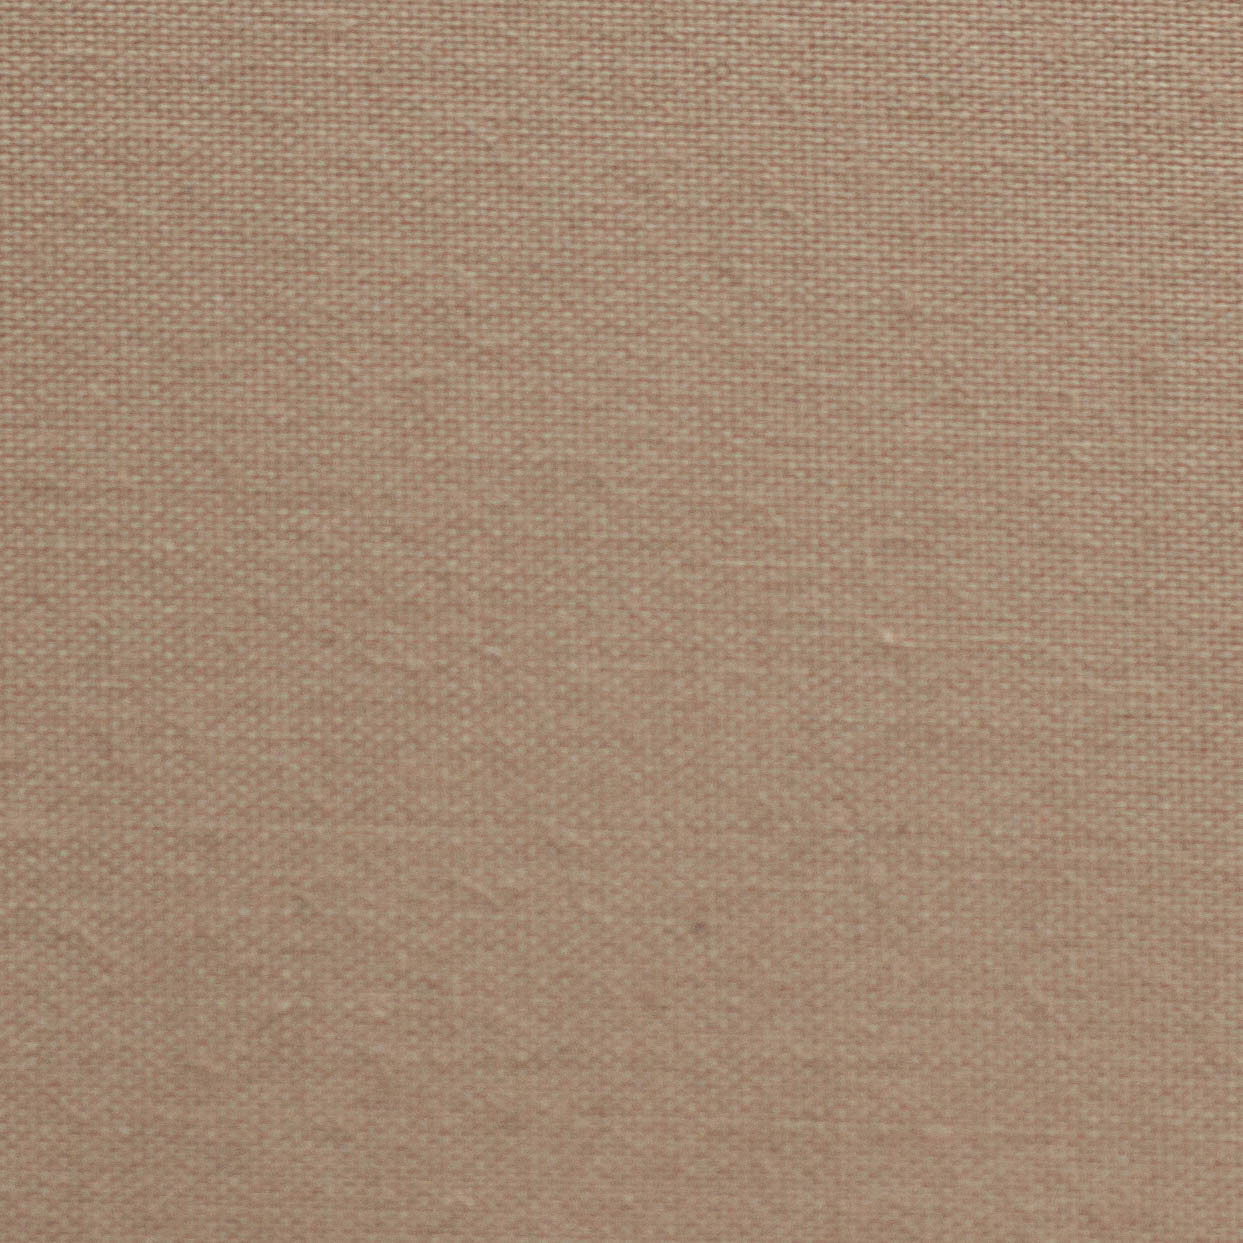 Cotton - taupe - CT 221